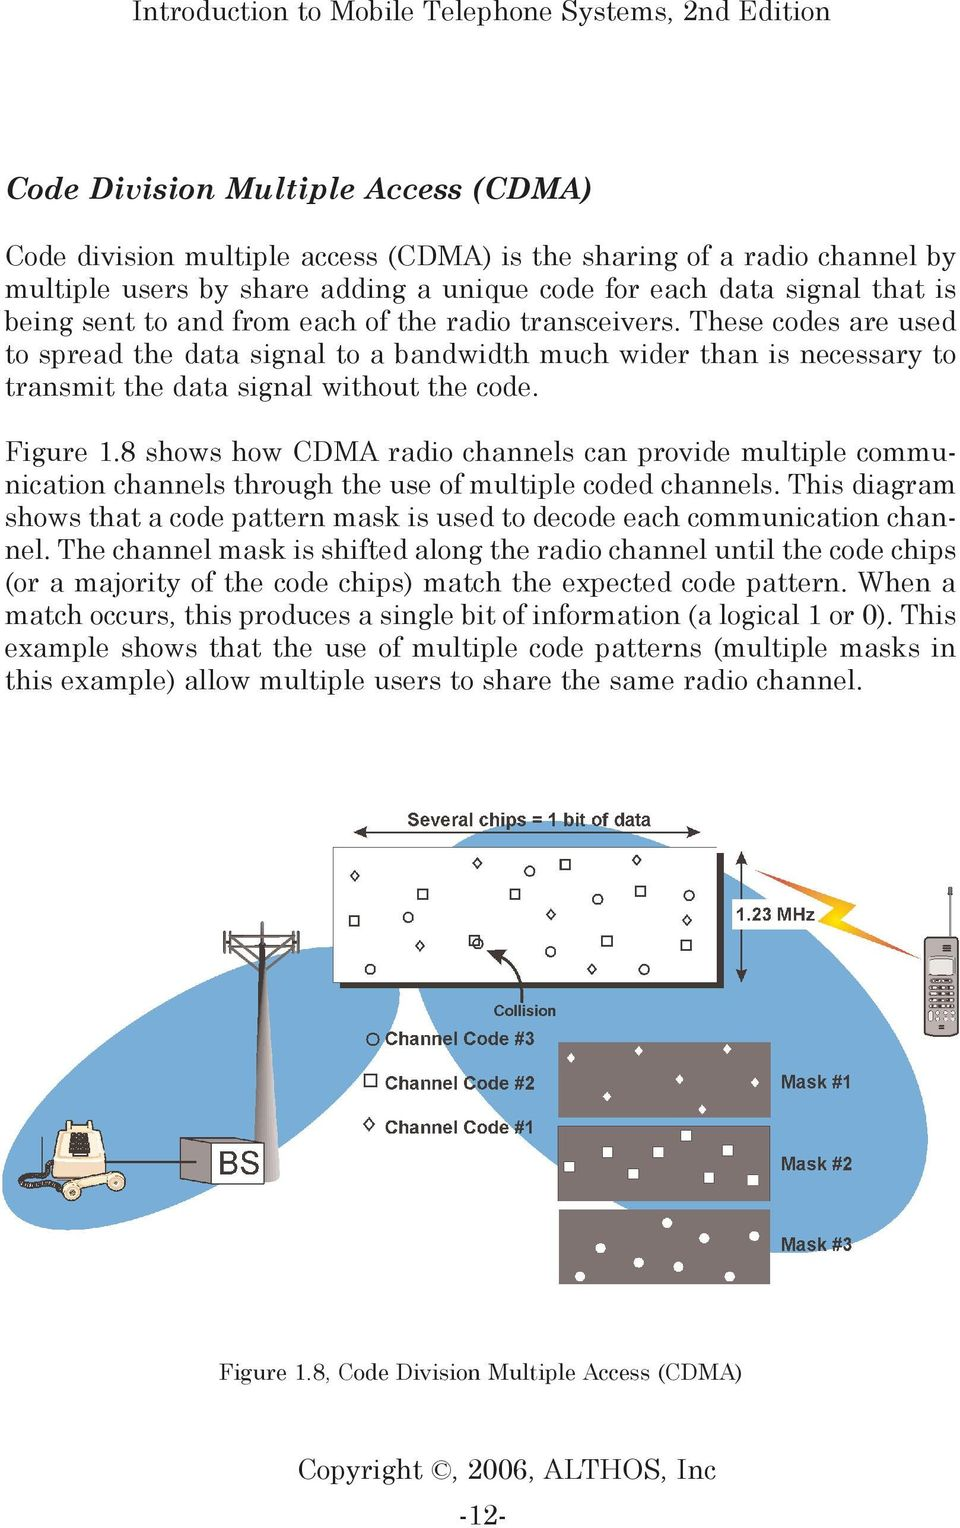 8 shows how CDMA radio channels can provide multiple communication channels through the use of multiple coded channels.